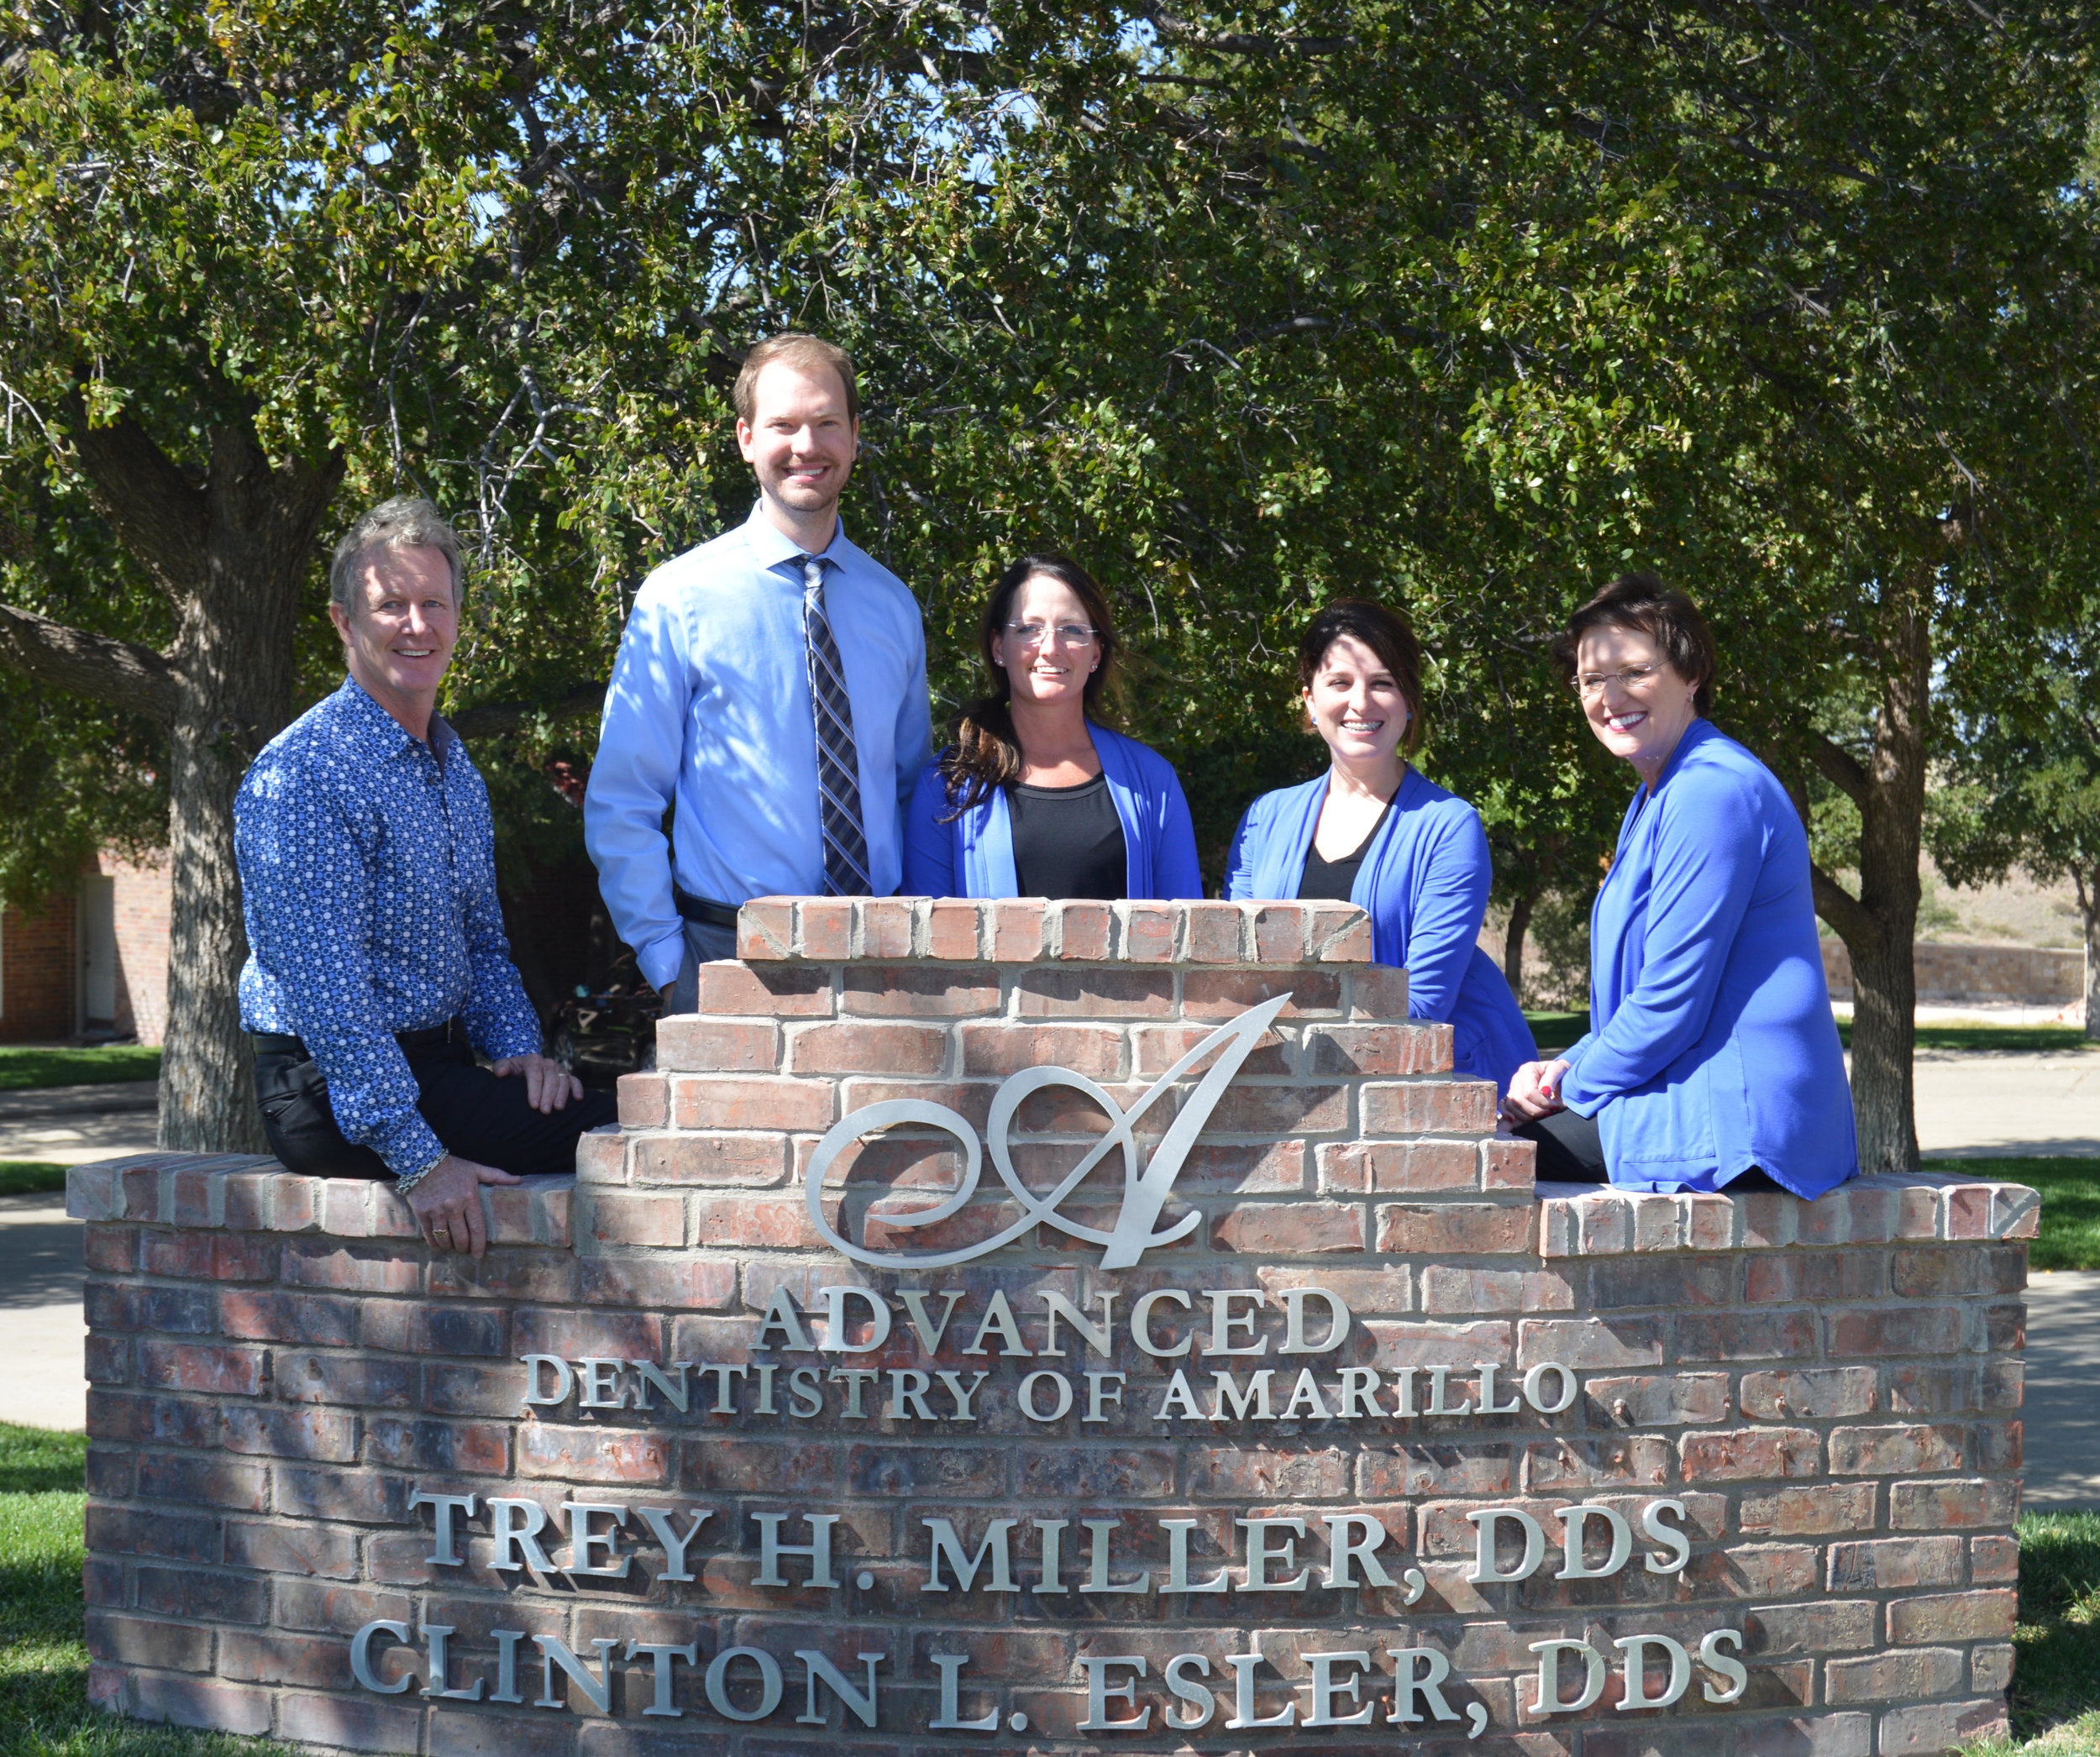 Our Team - Dr. Clinton Esler, Dr. Trey Miller, Kim, Chelsea, & Denise